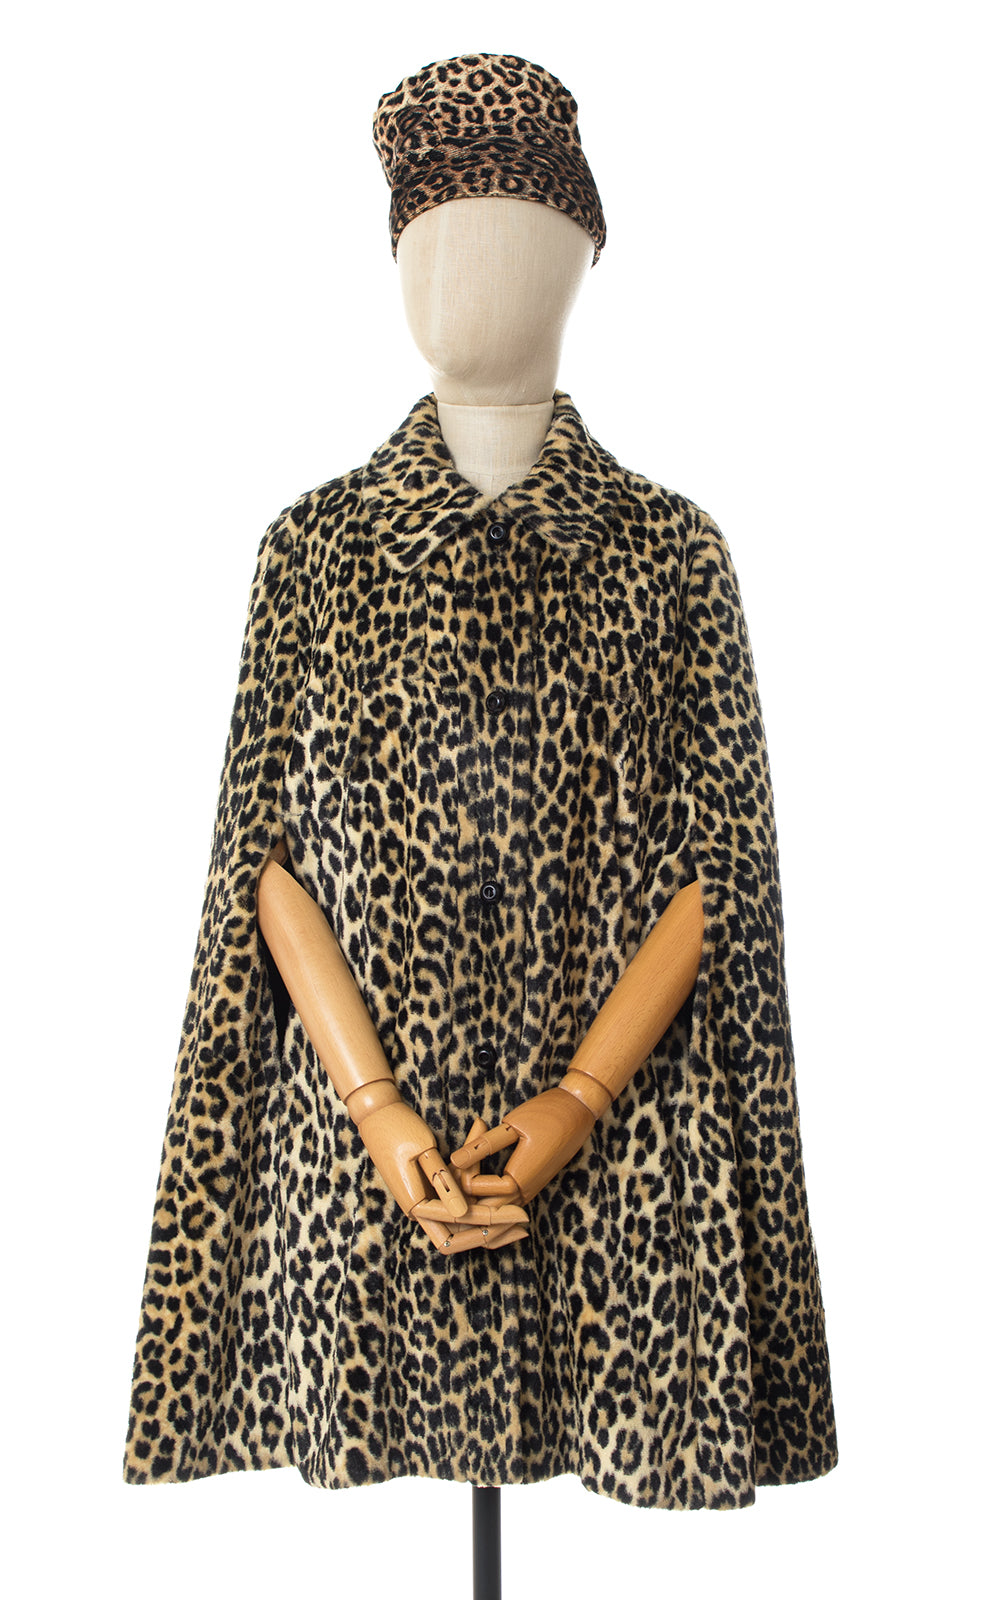 1960s Leopard Print Faux Fur Coat | x-small/small/medium